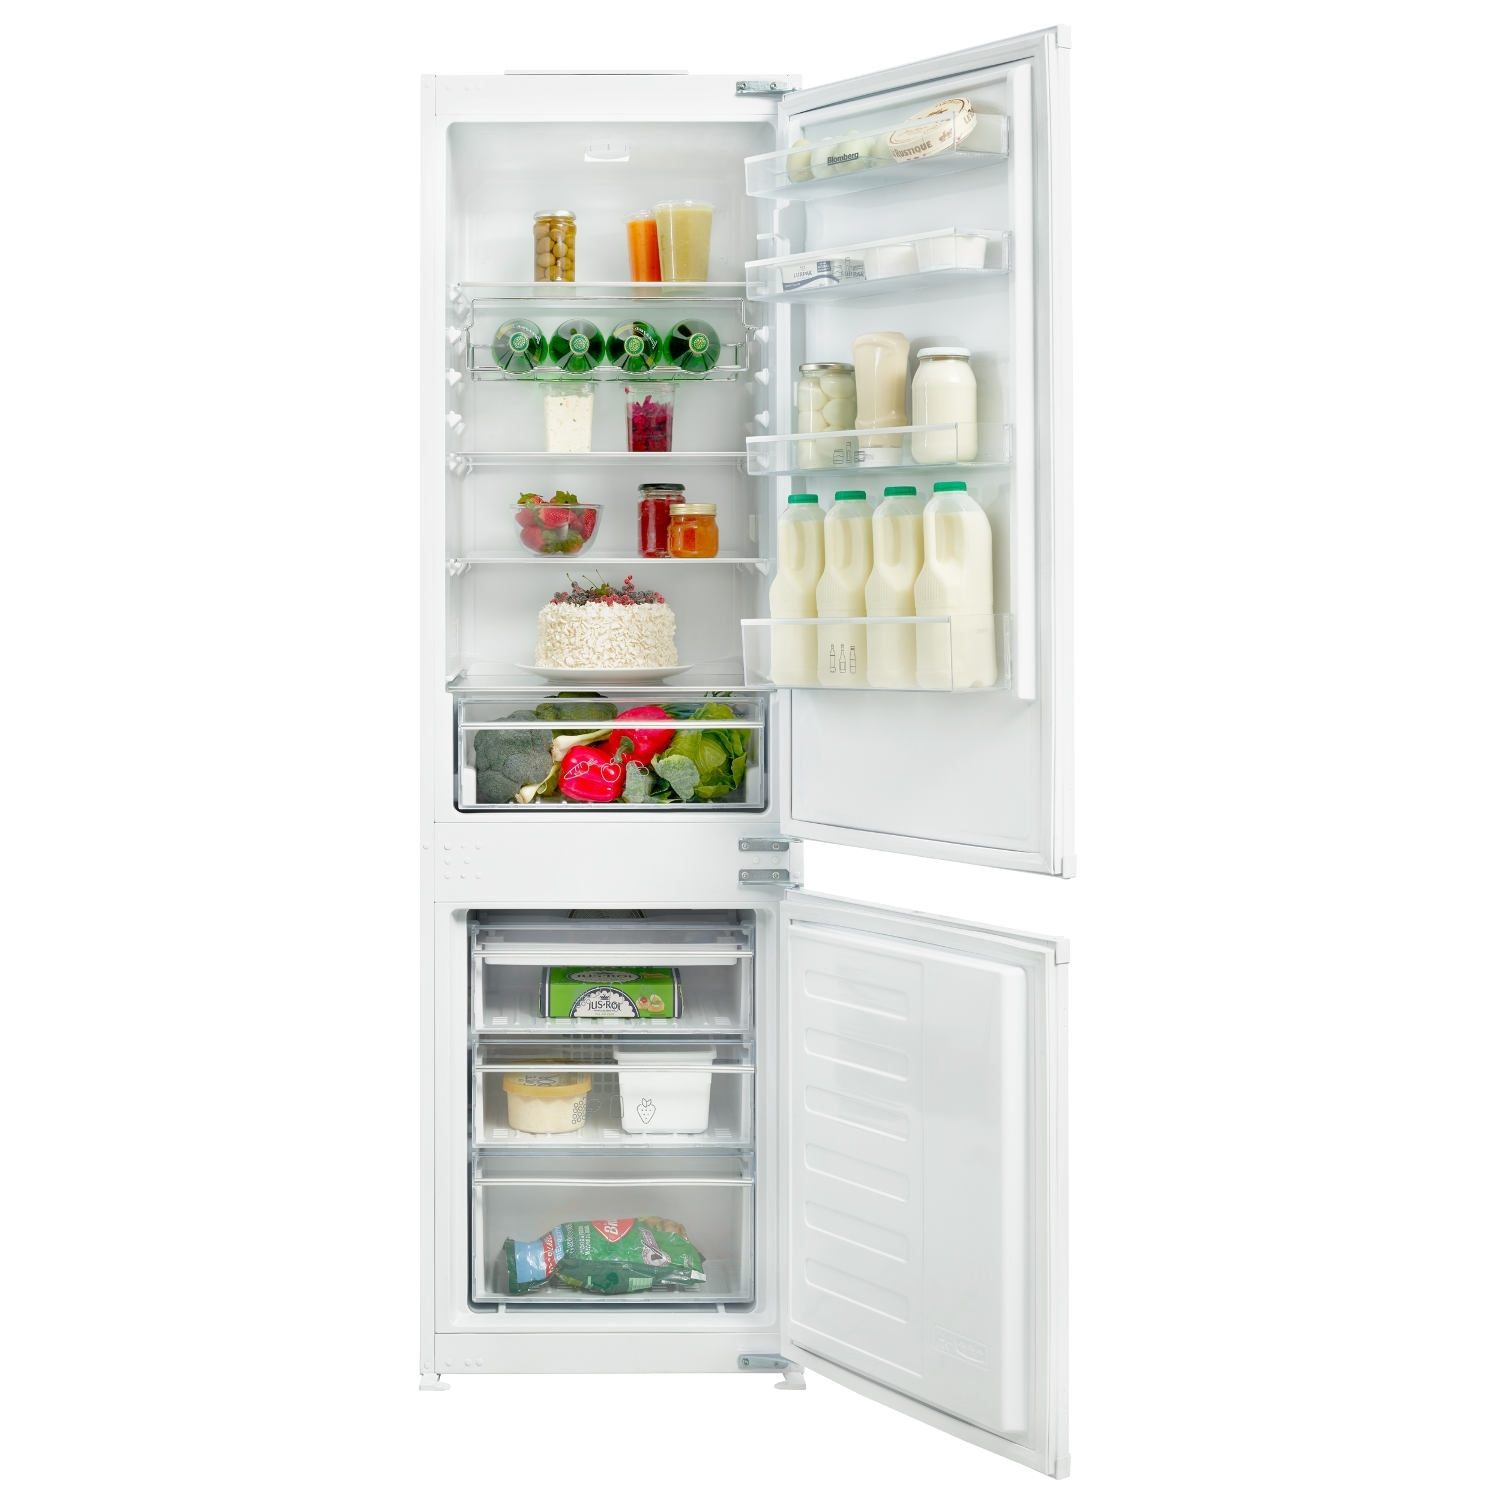 Blomberg 70/30 Integrated Frost Free Fridge Freezer - A+ Rated - 0